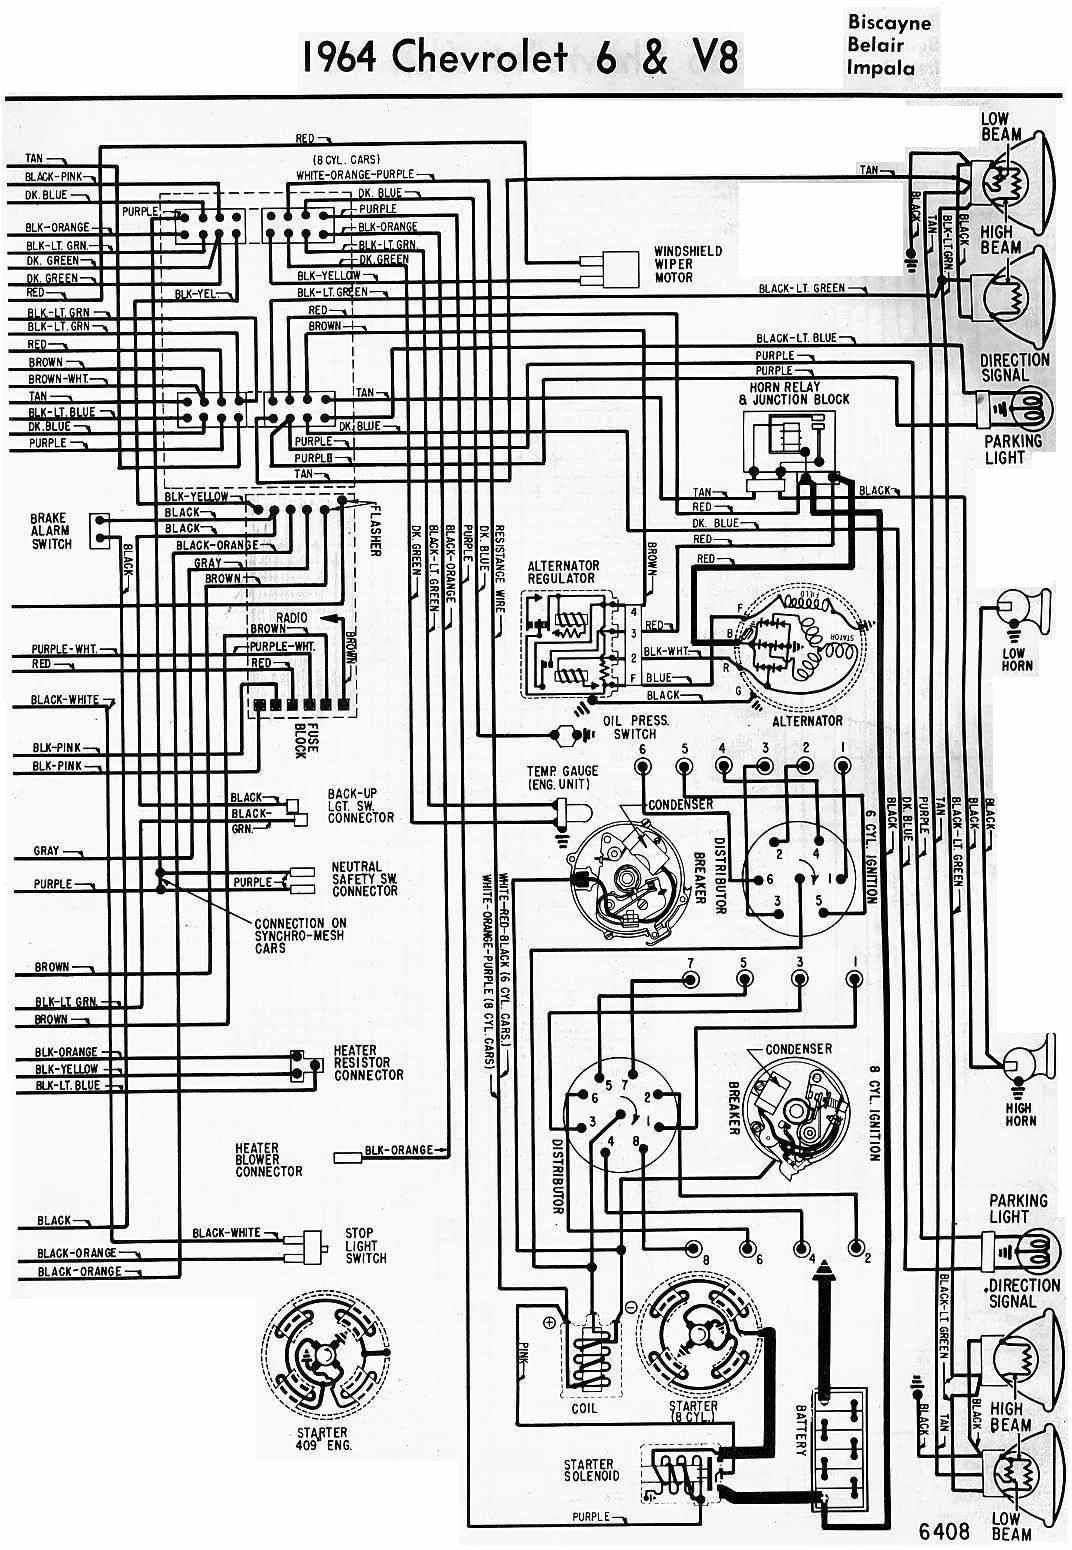 1964 impala ac wiring diagram free download Images Gallery